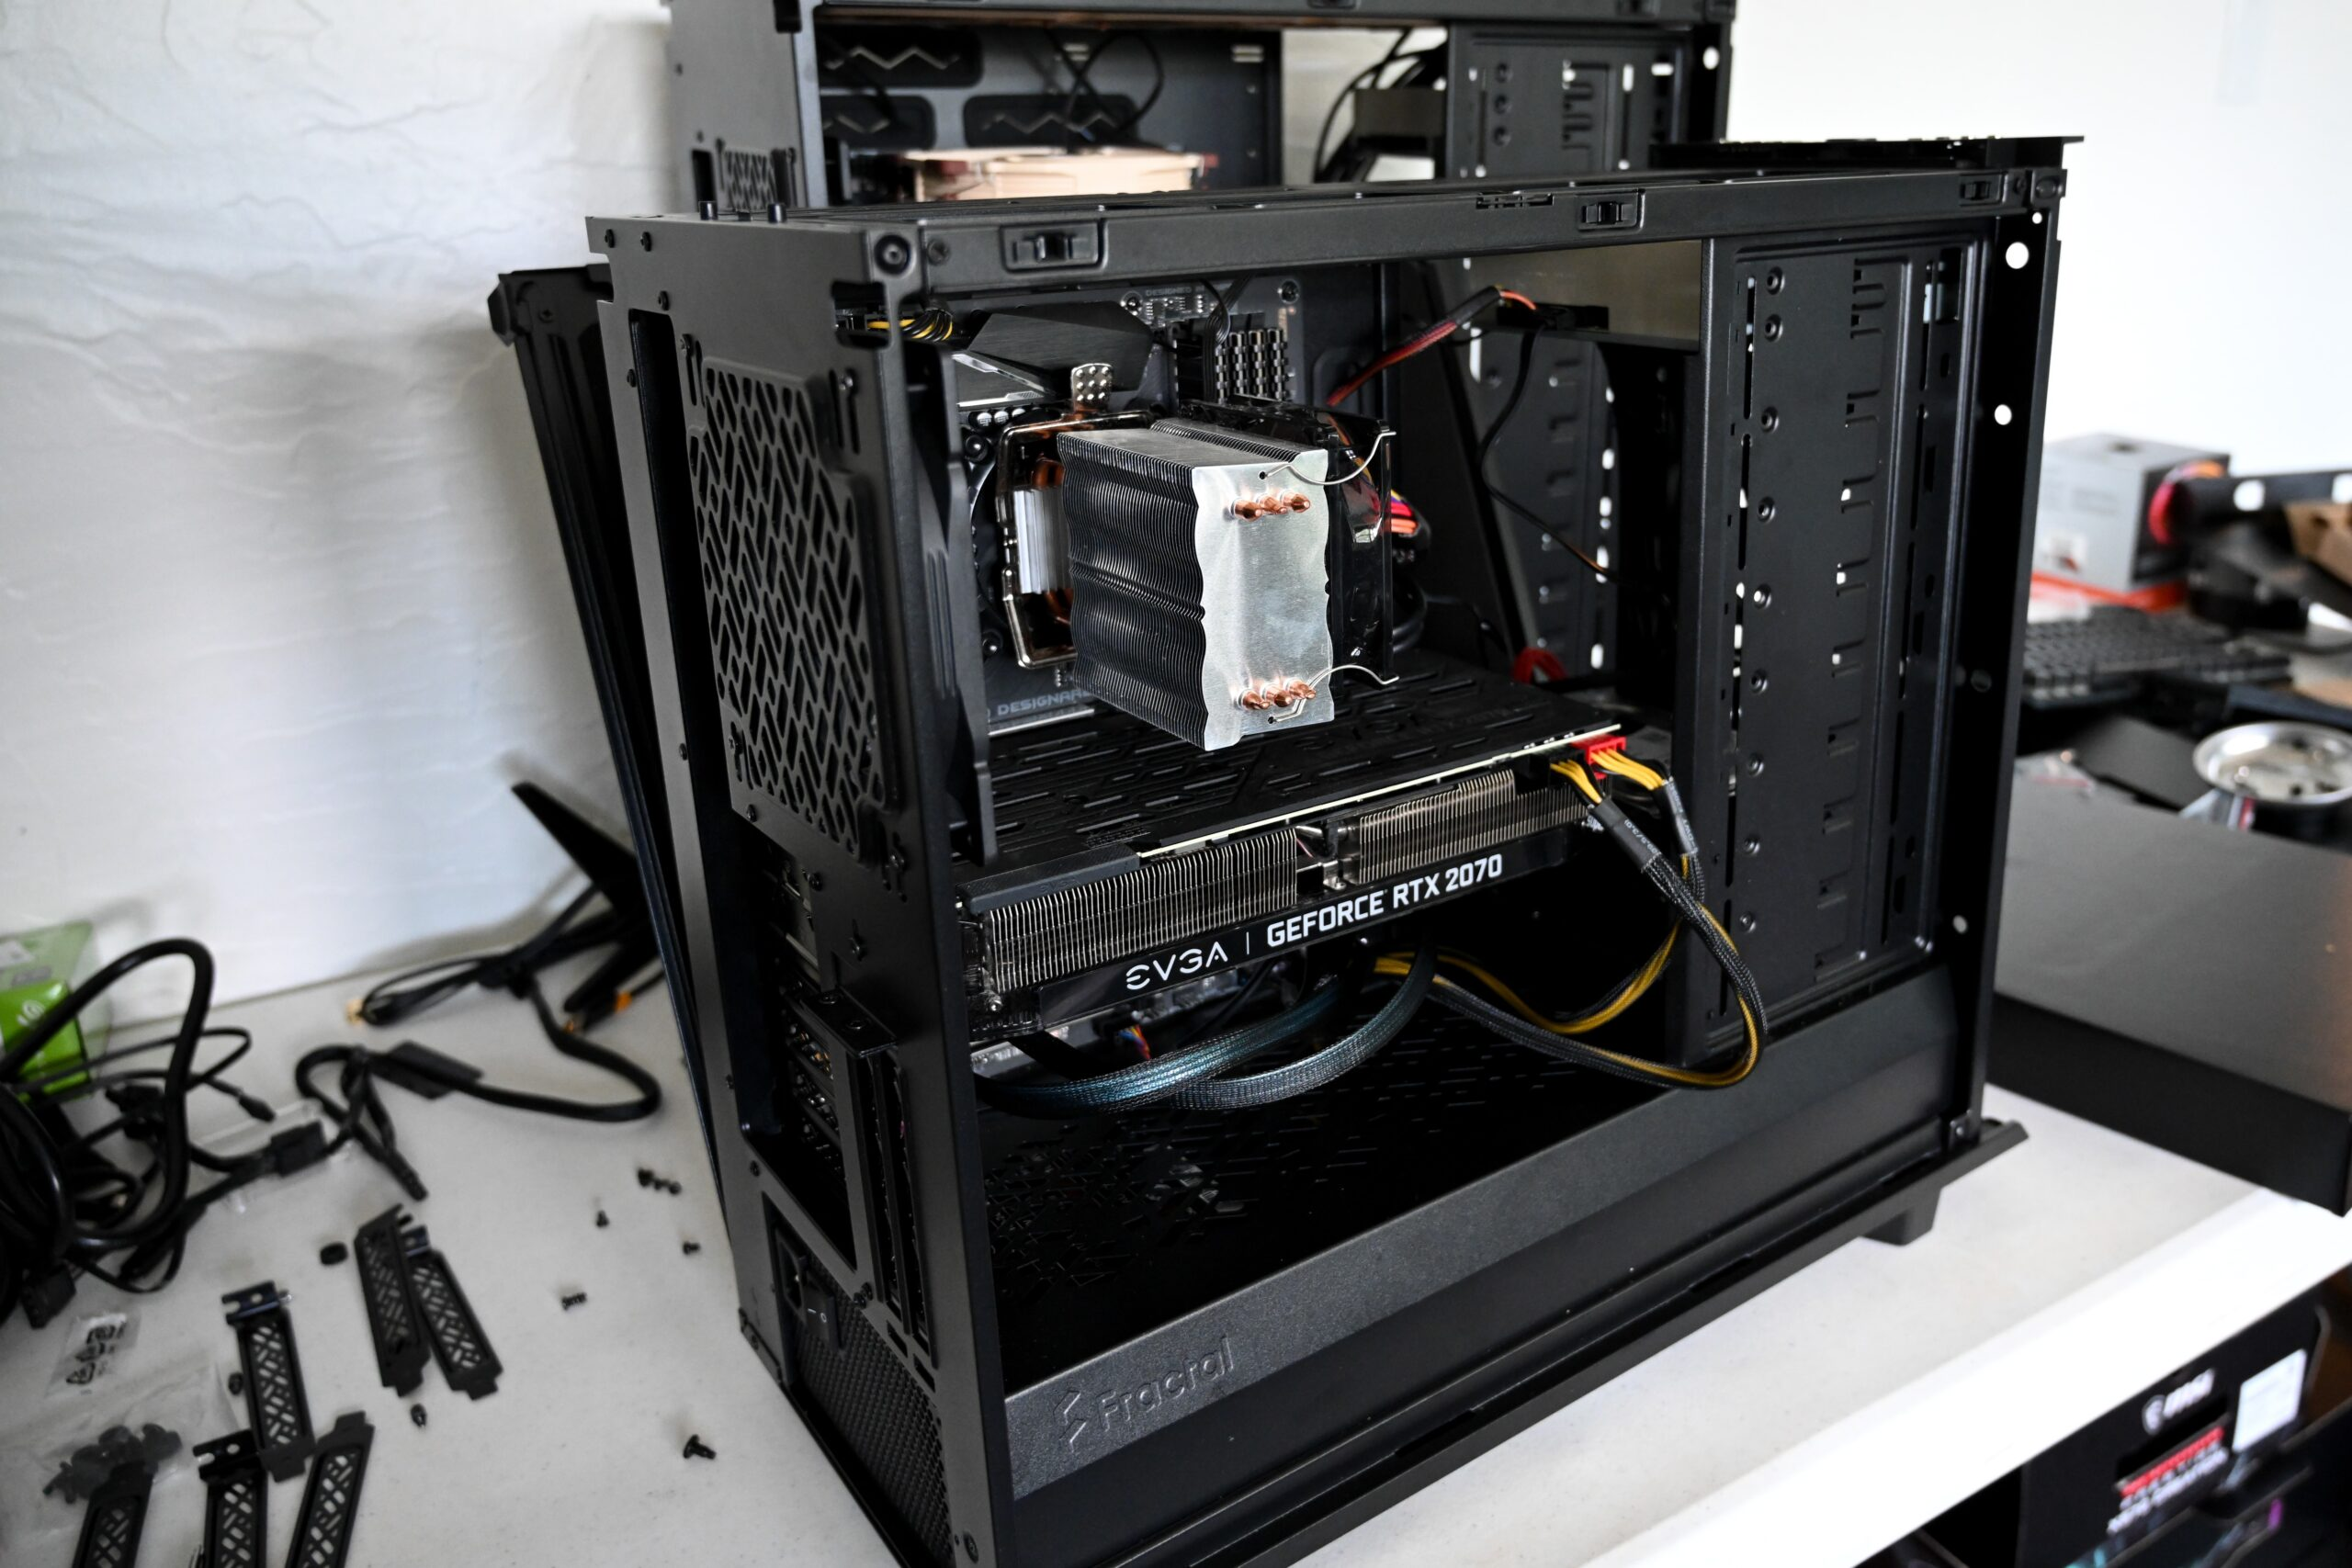 Computer with parts showing